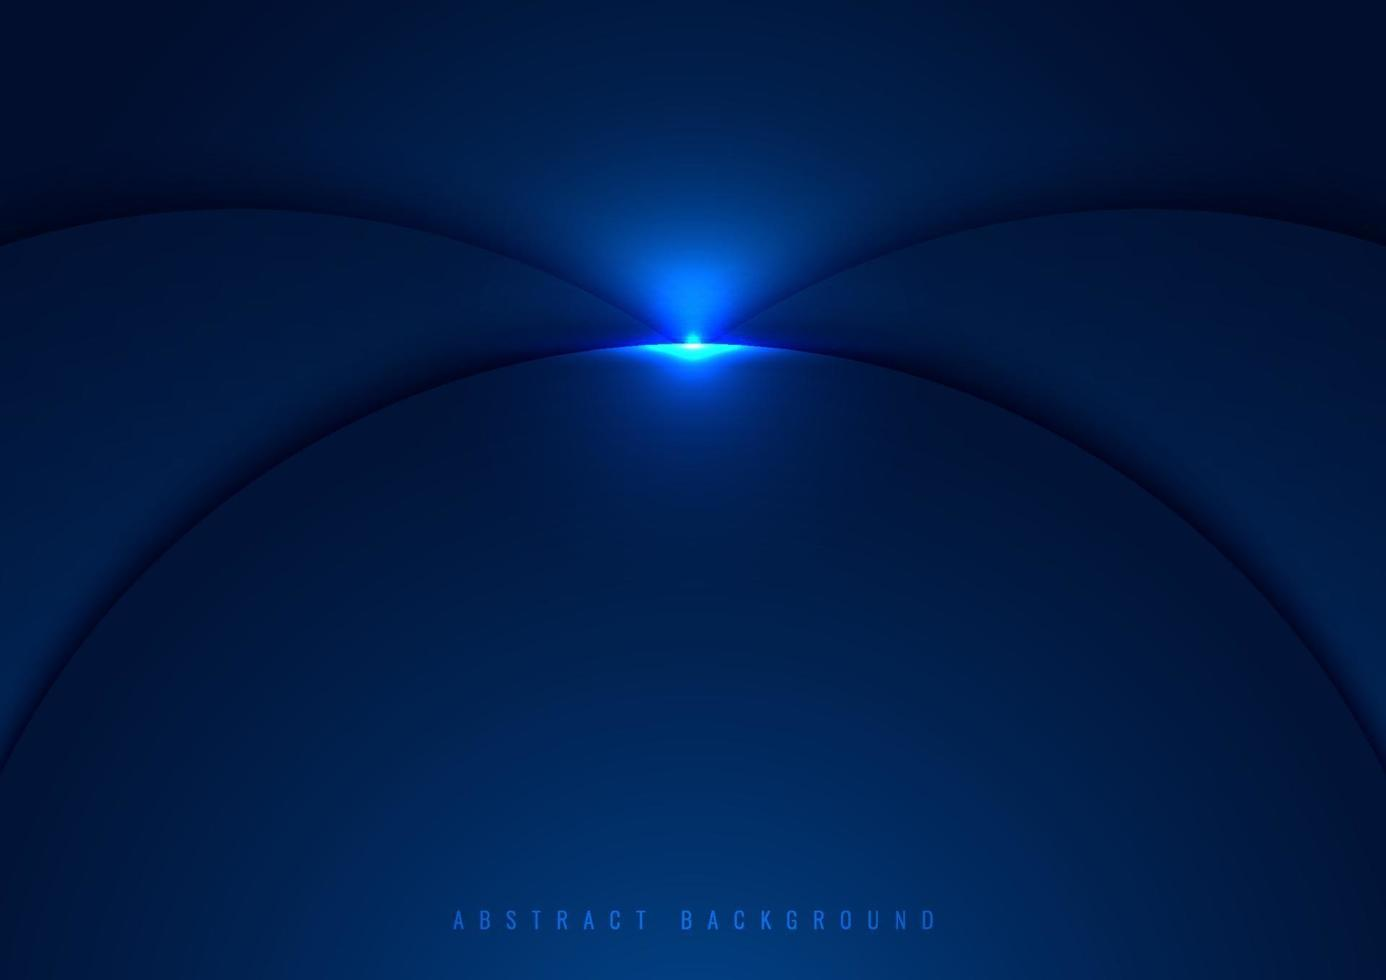 Blue circles overlapping layered with glow lighting effect on dark background vector